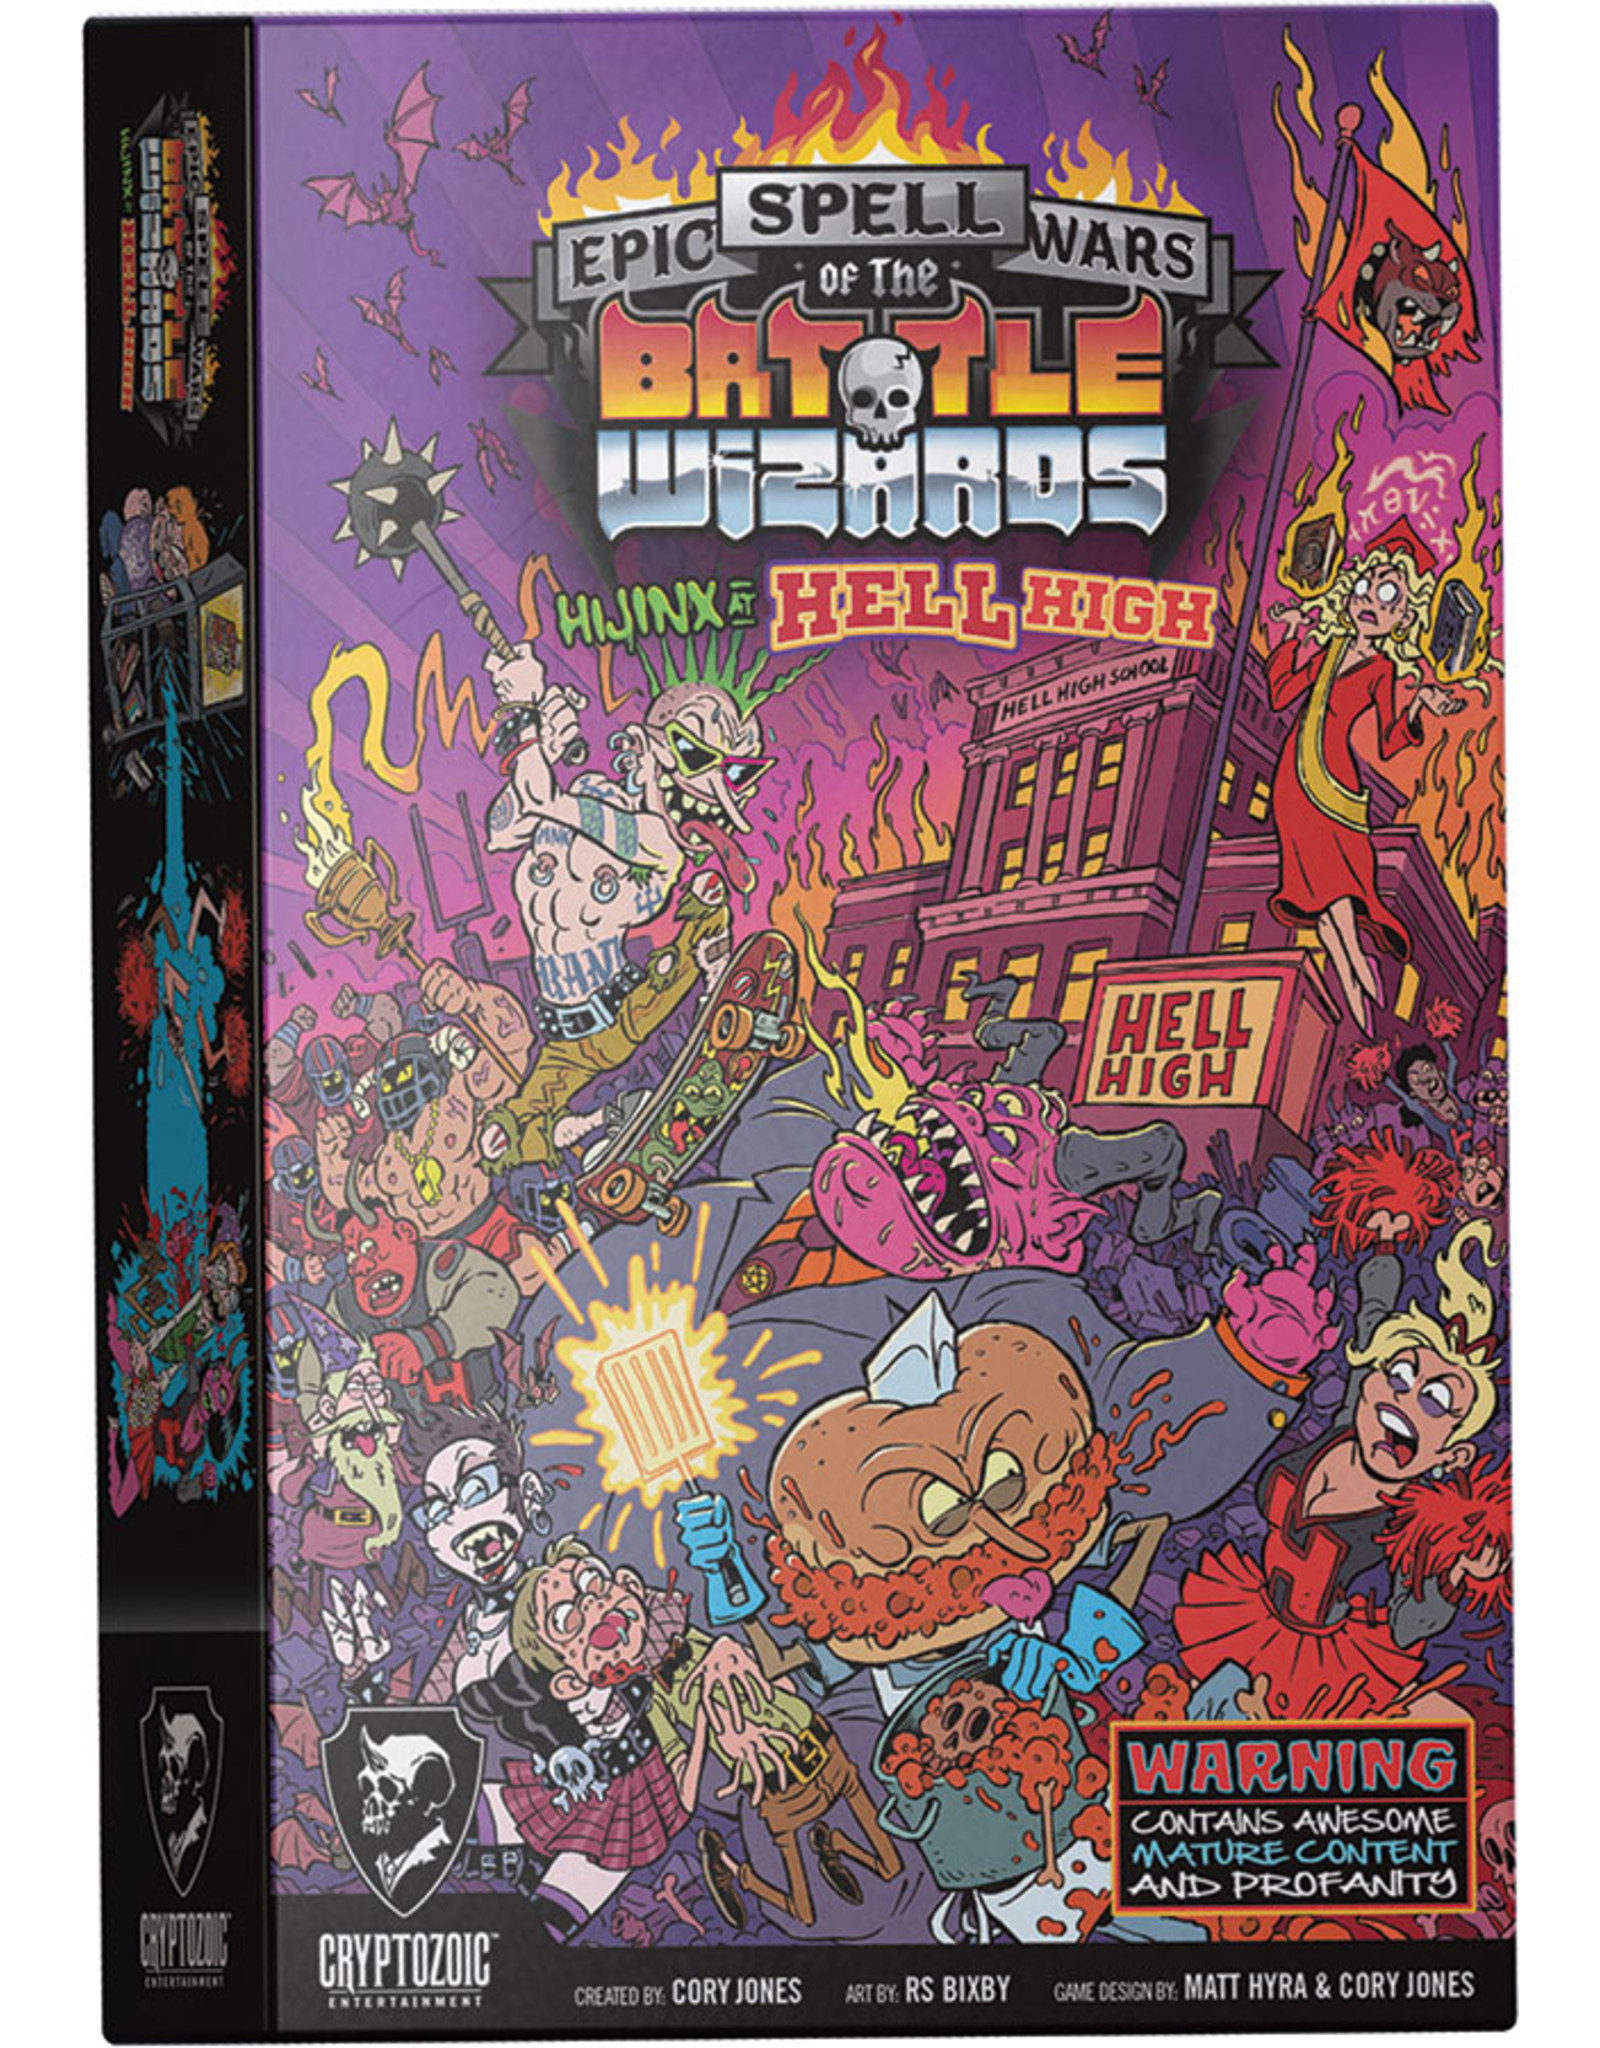 Cryptozoic Entertainment Epic Spell Wars of the Battle Wizards: 5 - Hijinx at Hell High (stand alone or expansion)